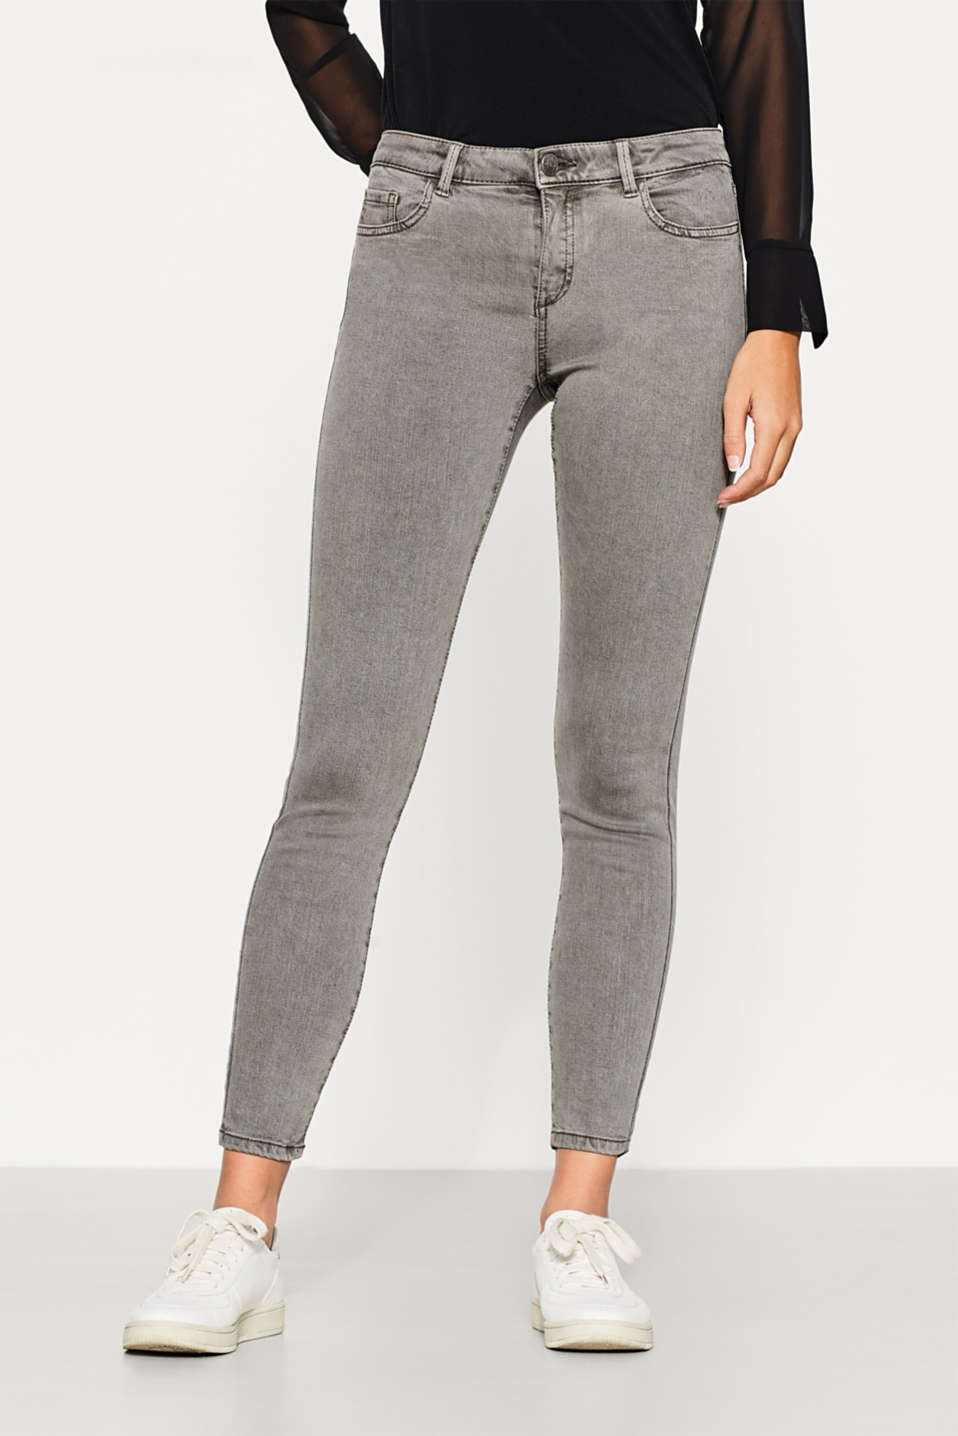 Esprit - Cropped trousers in stretchy blended cotton